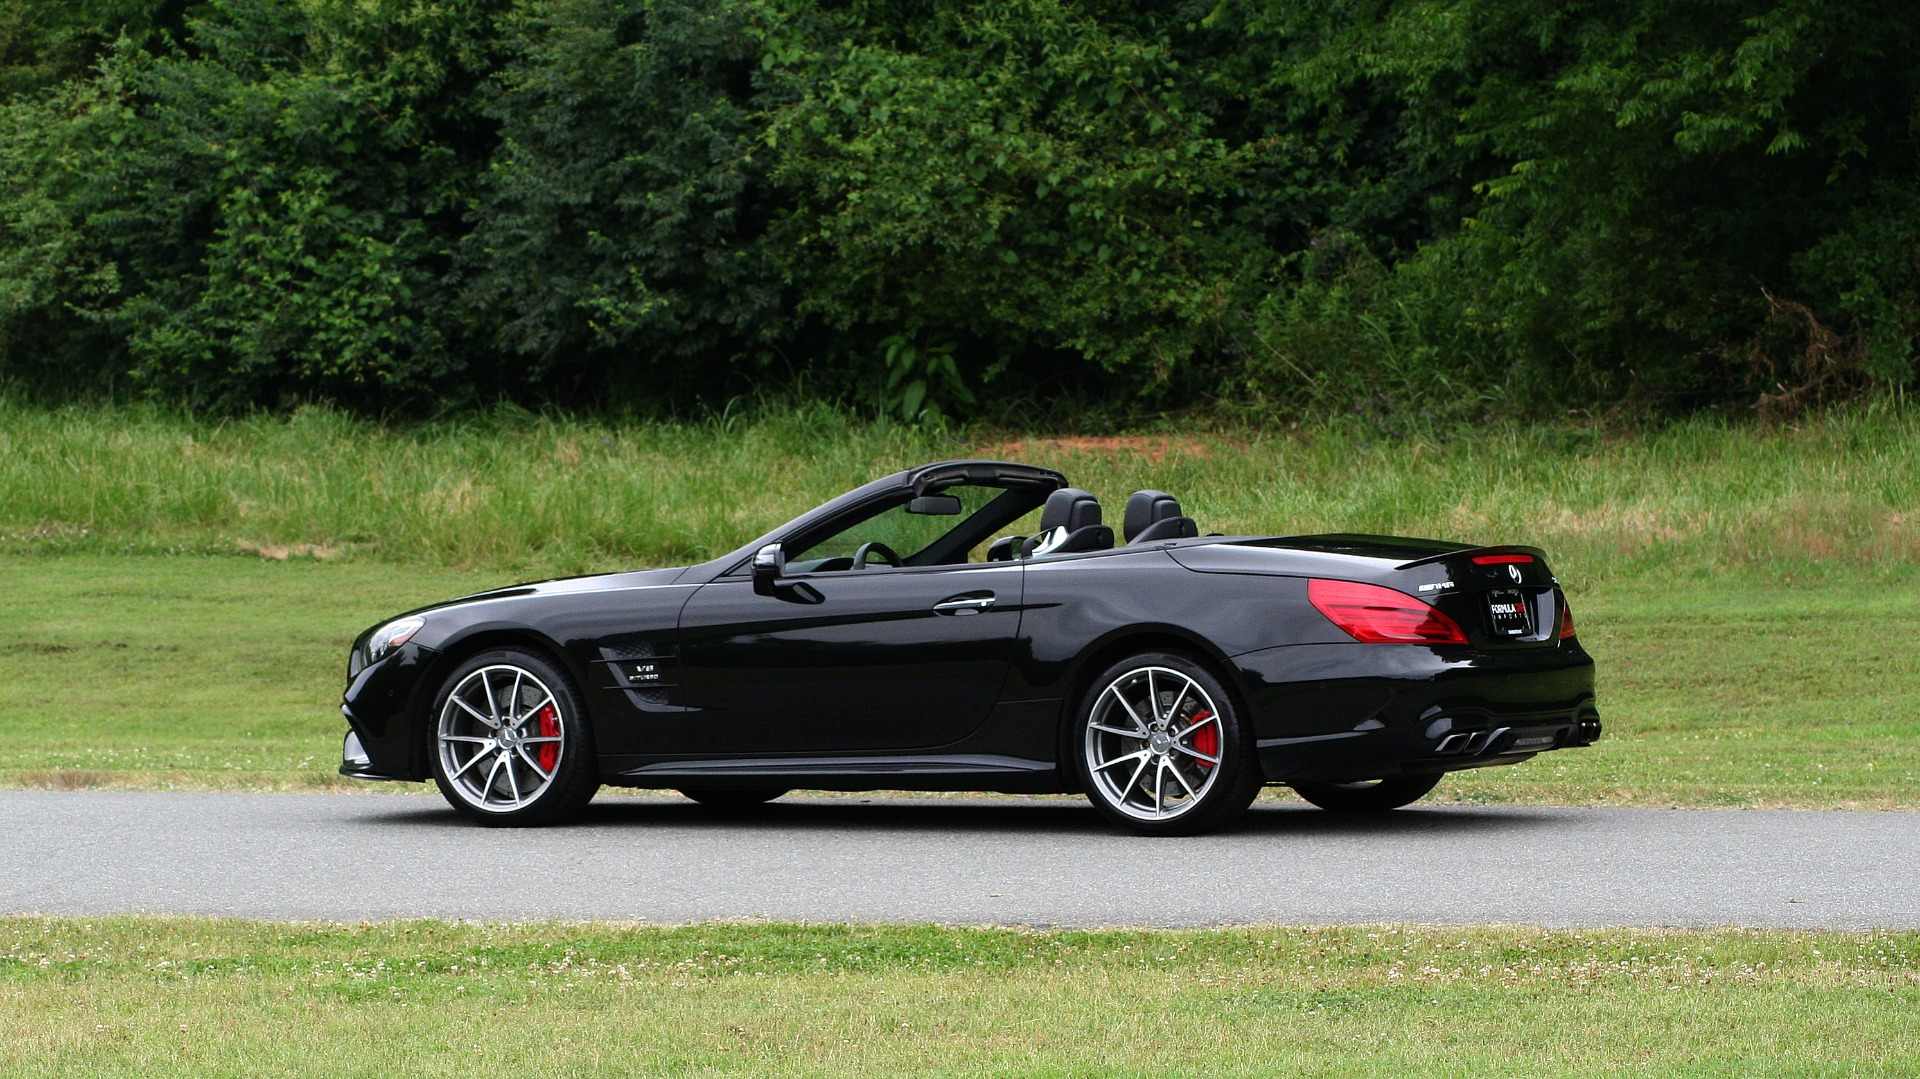 Used 2017 Mercedes-Benz SL 63 AMG / ROADSTER / DRIVER ASSIST / NAV / CAMERA for sale Sold at Formula Imports in Charlotte NC 28227 4